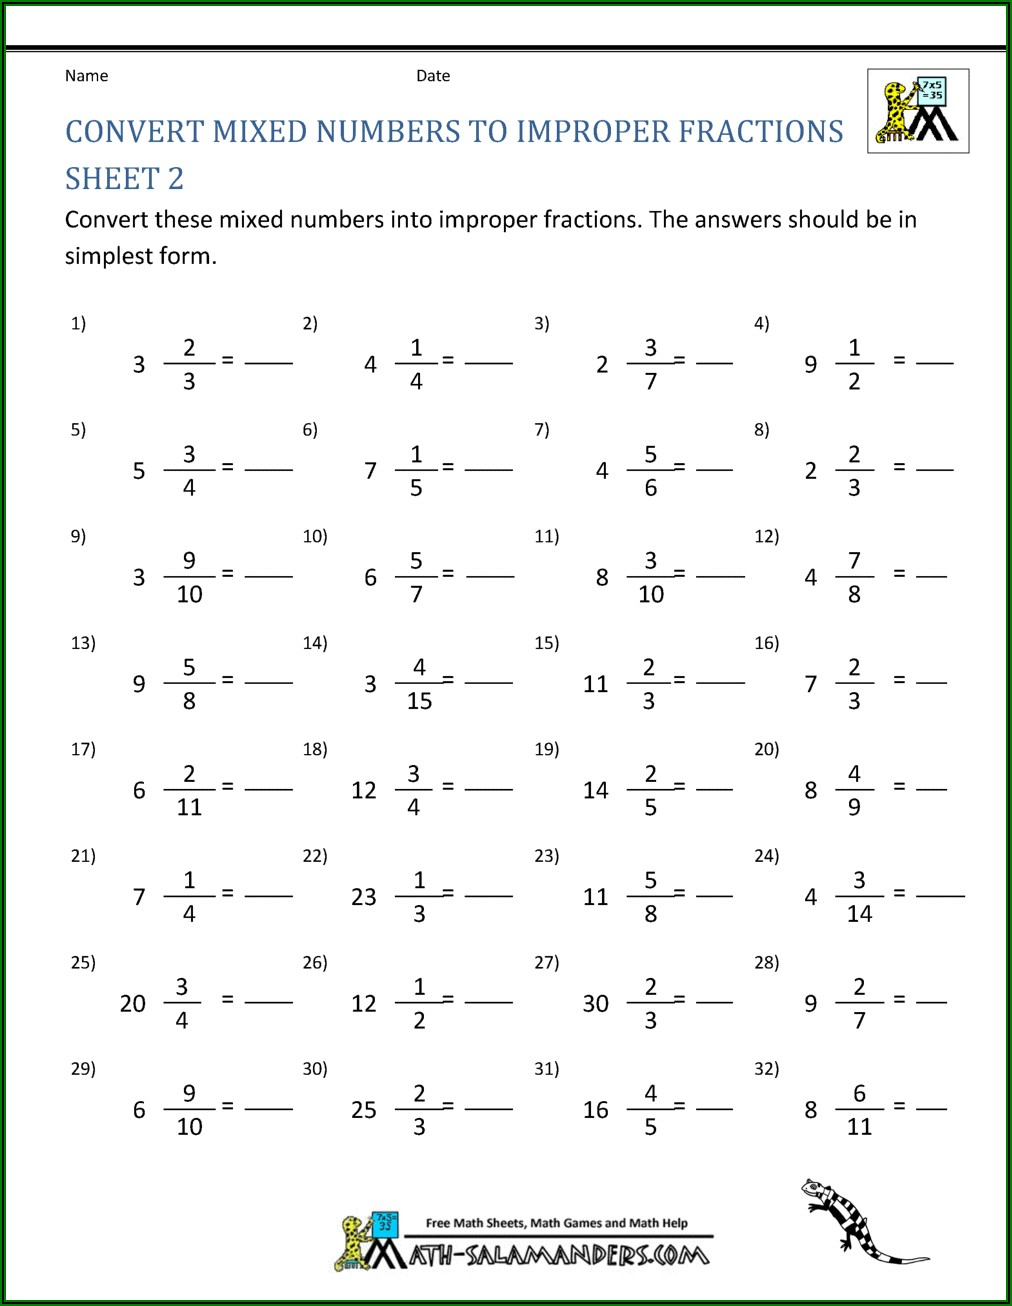 Converting Mixed Numbers To Improper Fractions Worksheet Year 4